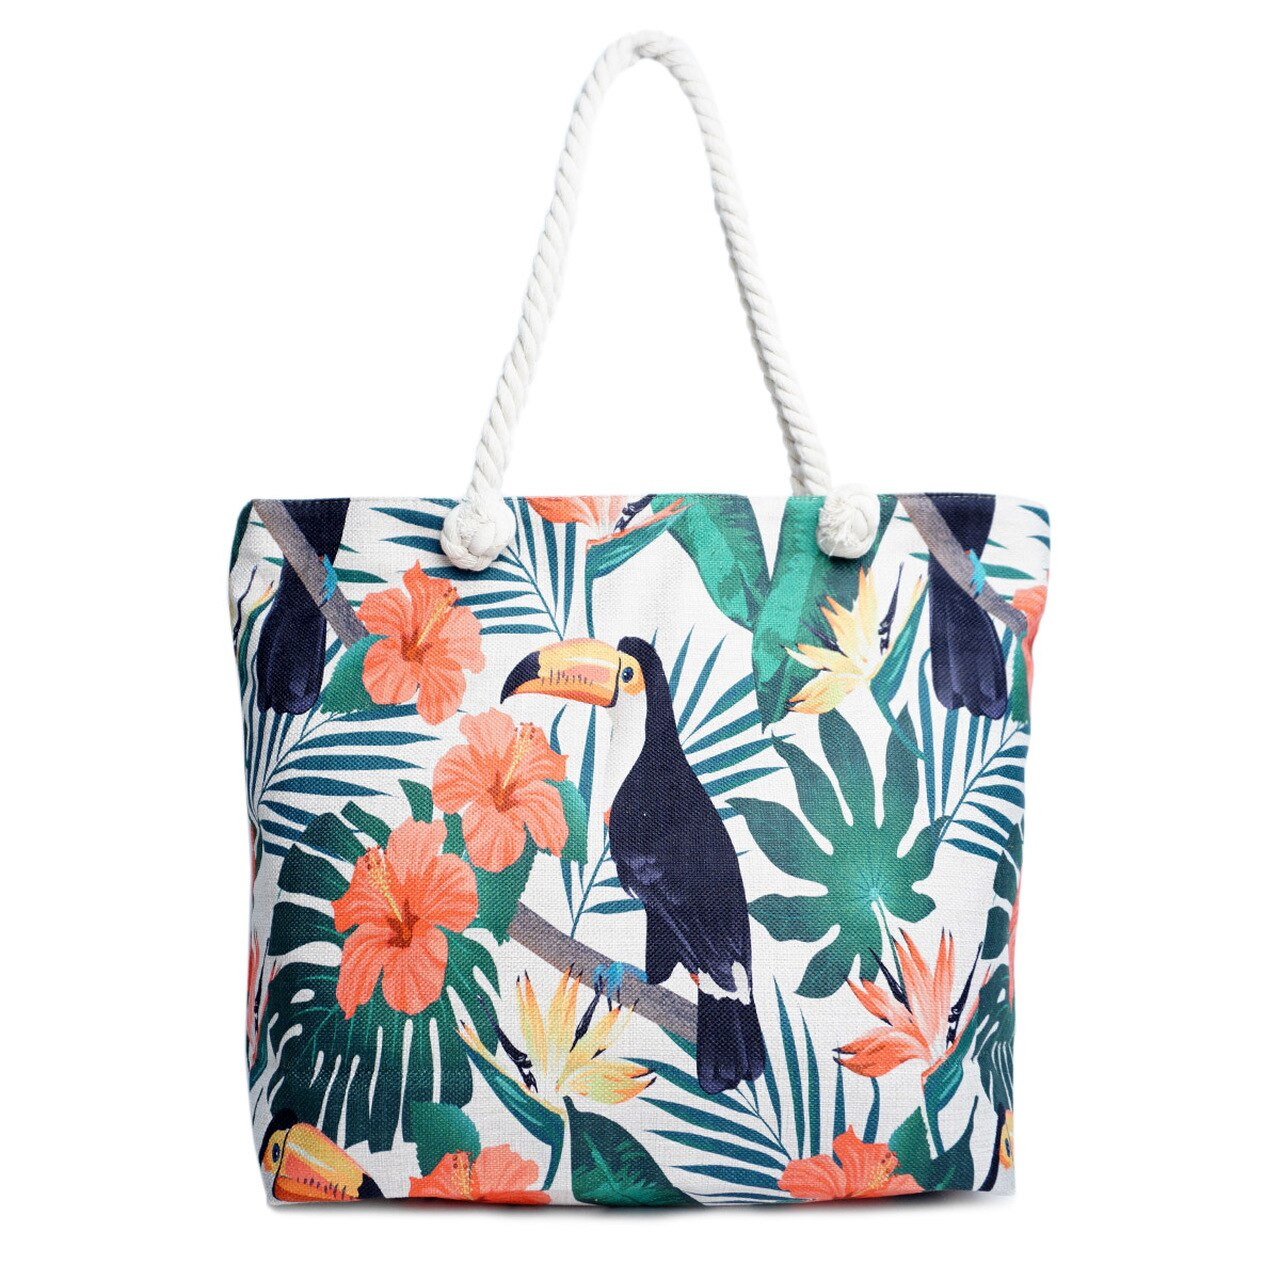 Toucan Tropical Tote Beach Bag -Light Beige - Front